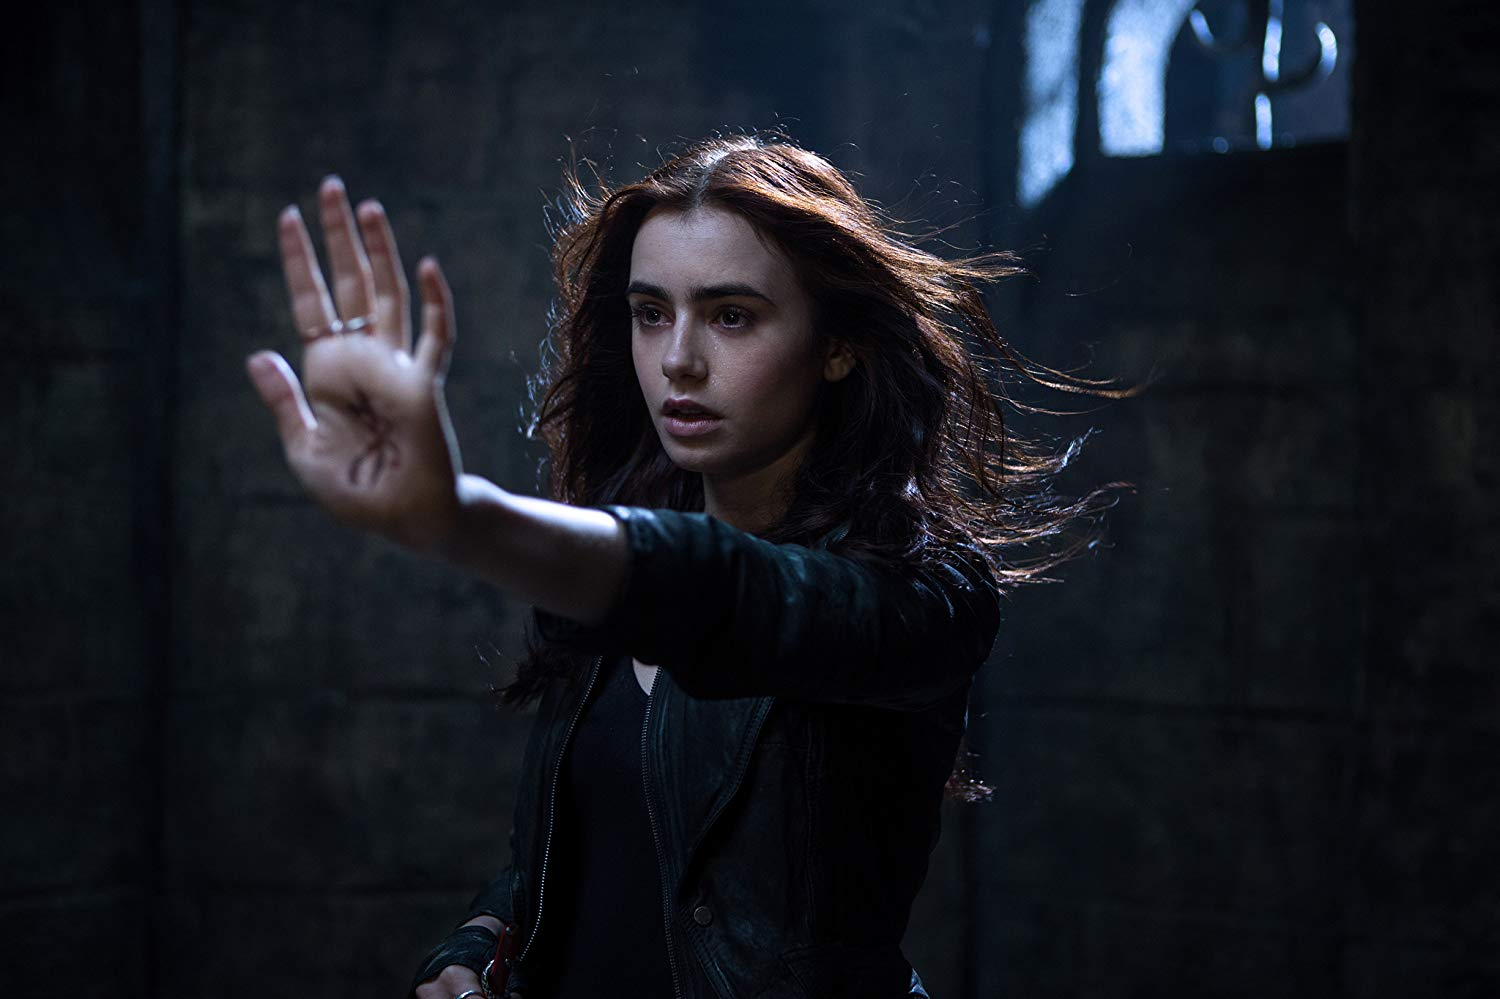 Lily Collins as Clary Fray in The Mortal Instruments: City of Bones (2013)